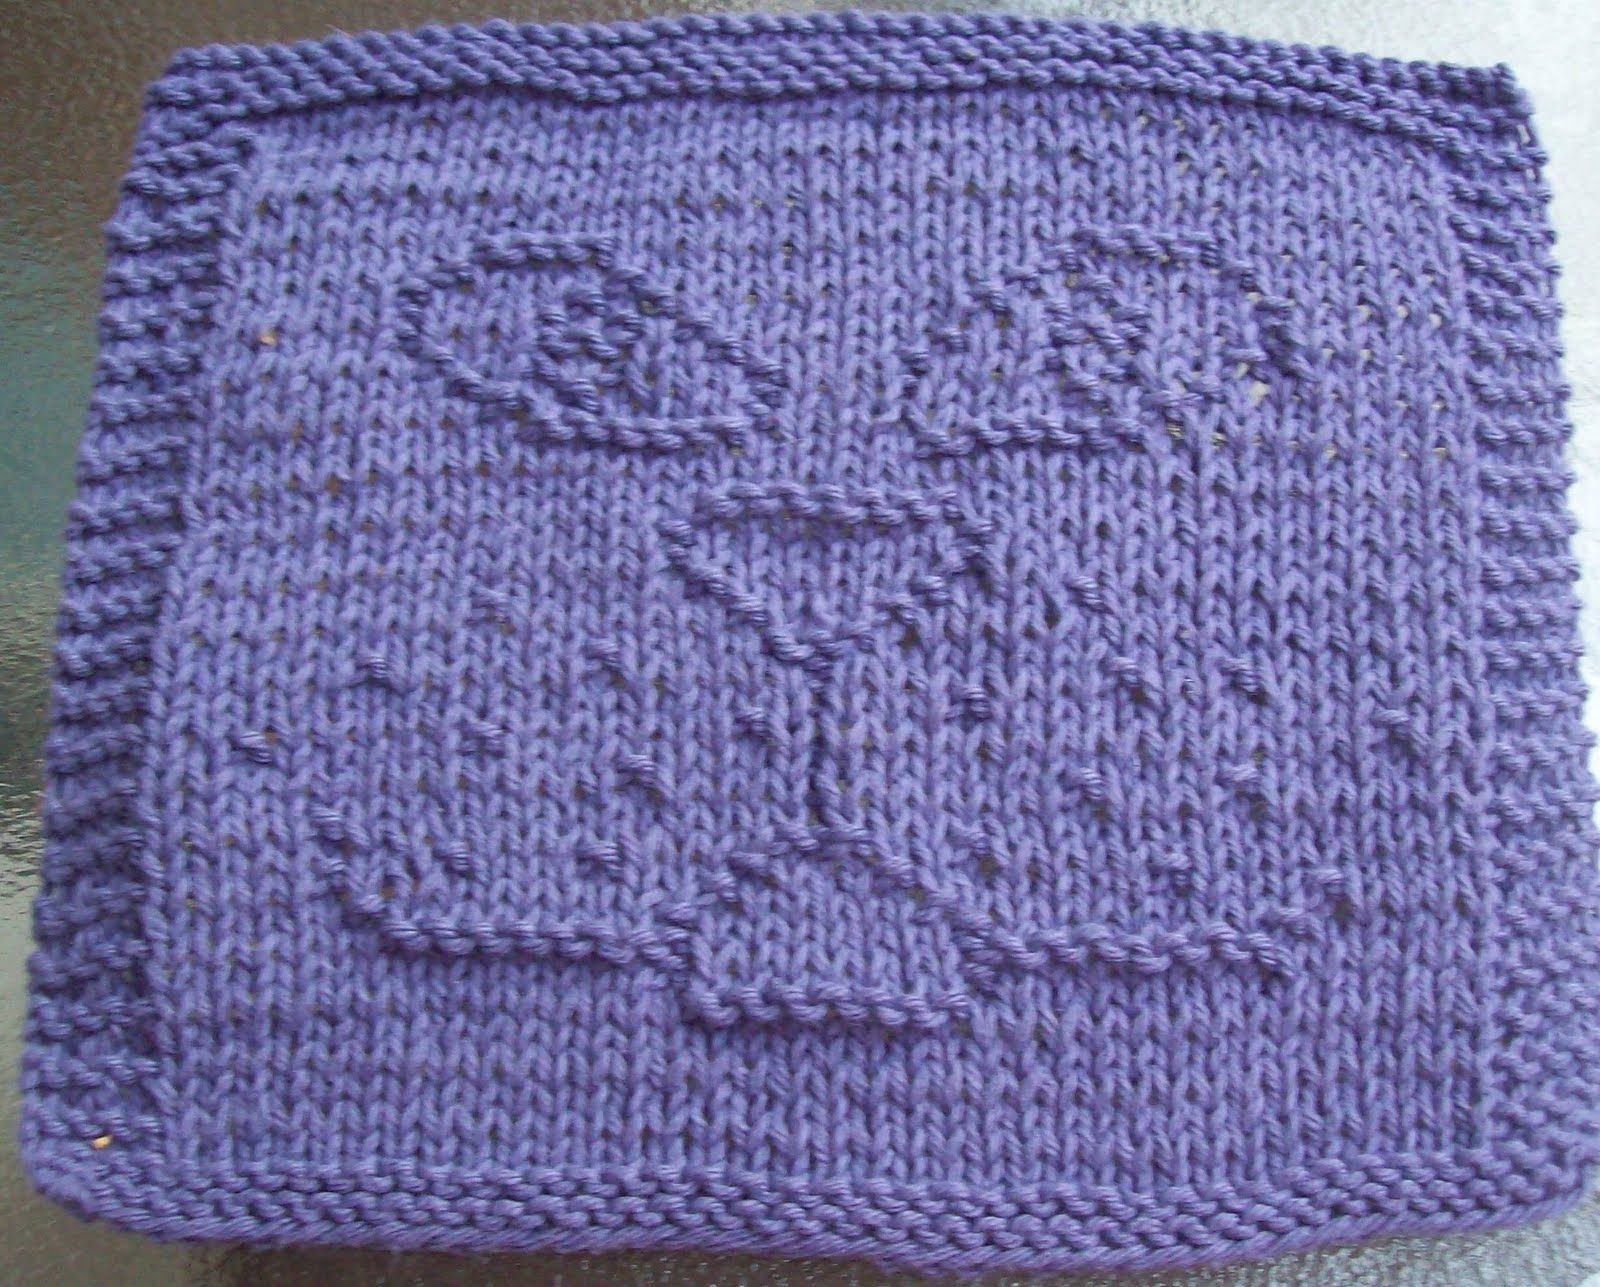 DigKnitty Designs: Cat Face Knit Dishcloth Pattern | knitting ...